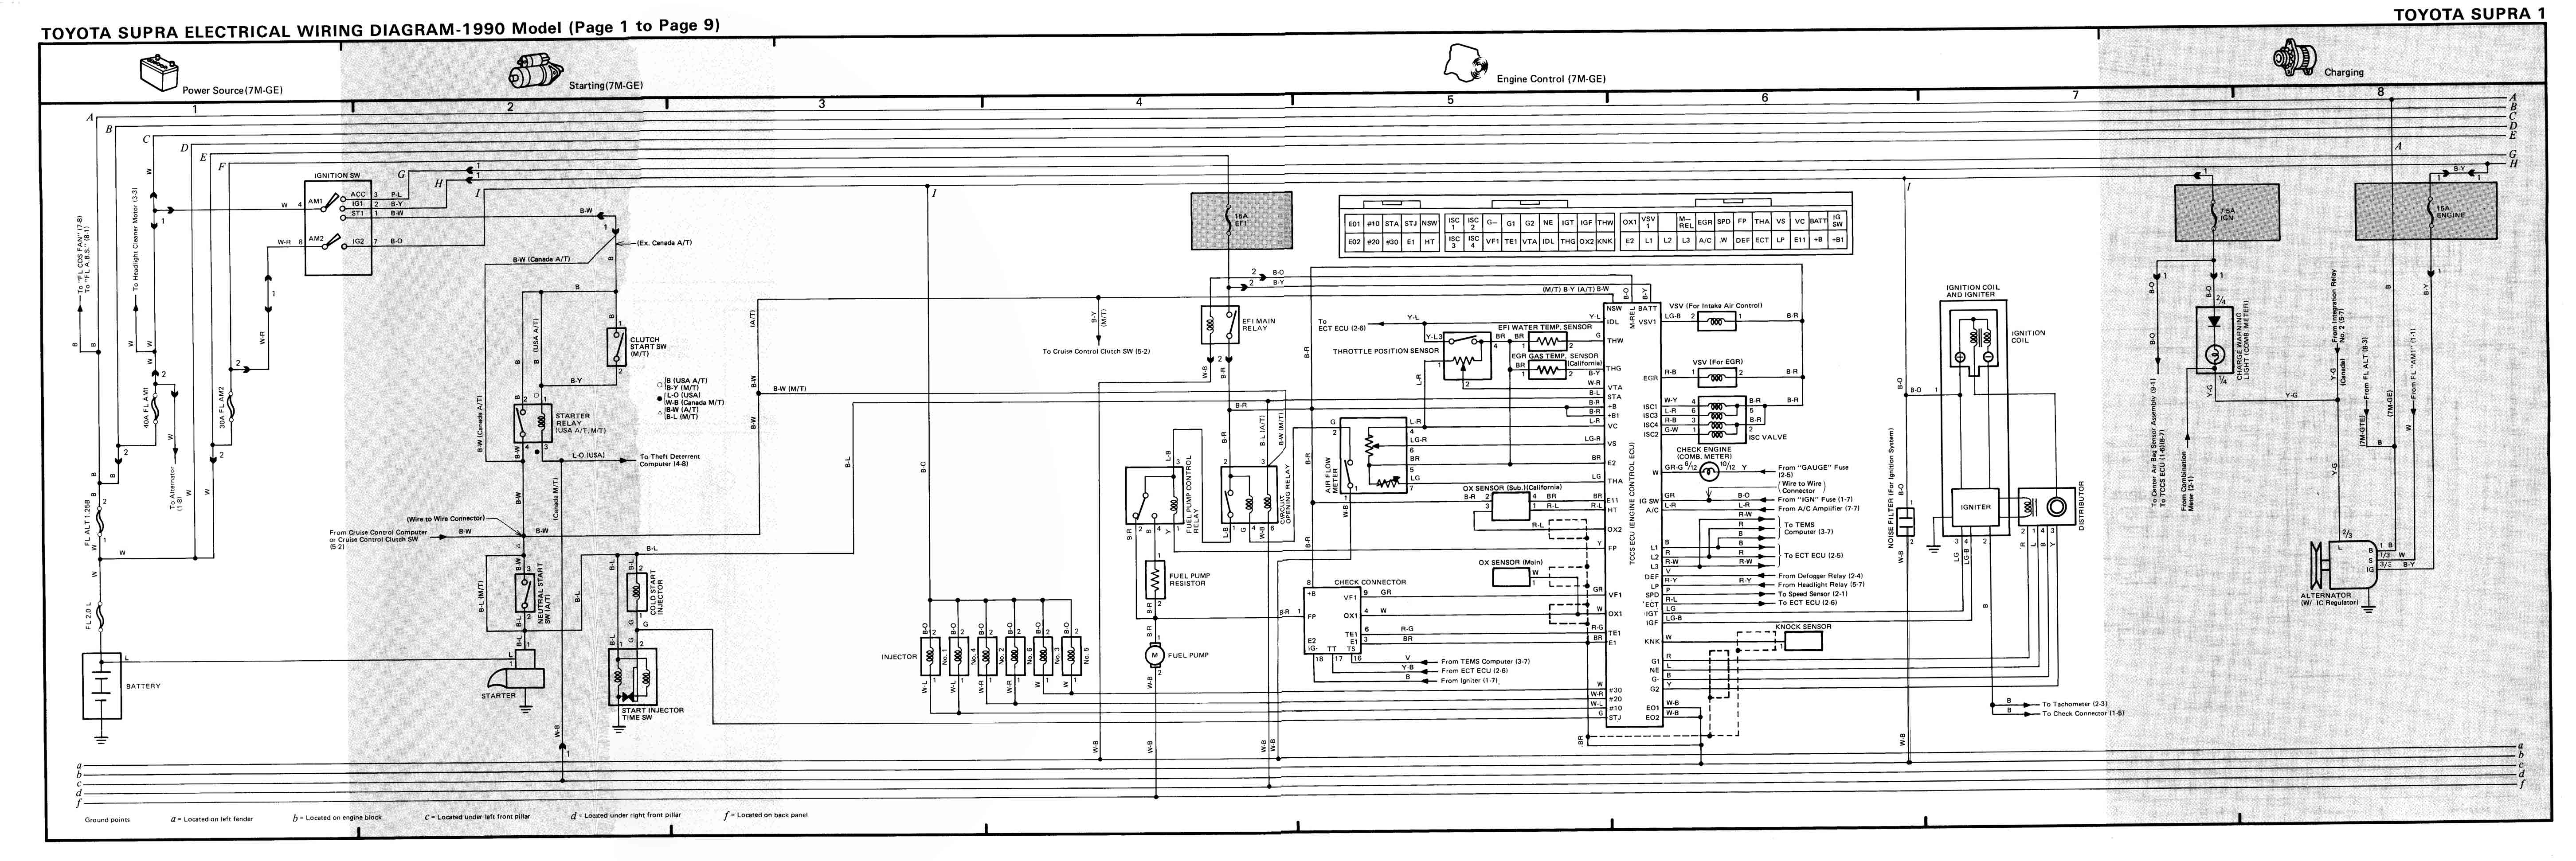 Flyout 1 7mgte wiring harness diagram sr20 wiring diagram \u2022 wiring diagrams mk3 supra 1jz wiring harness at reclaimingppi.co